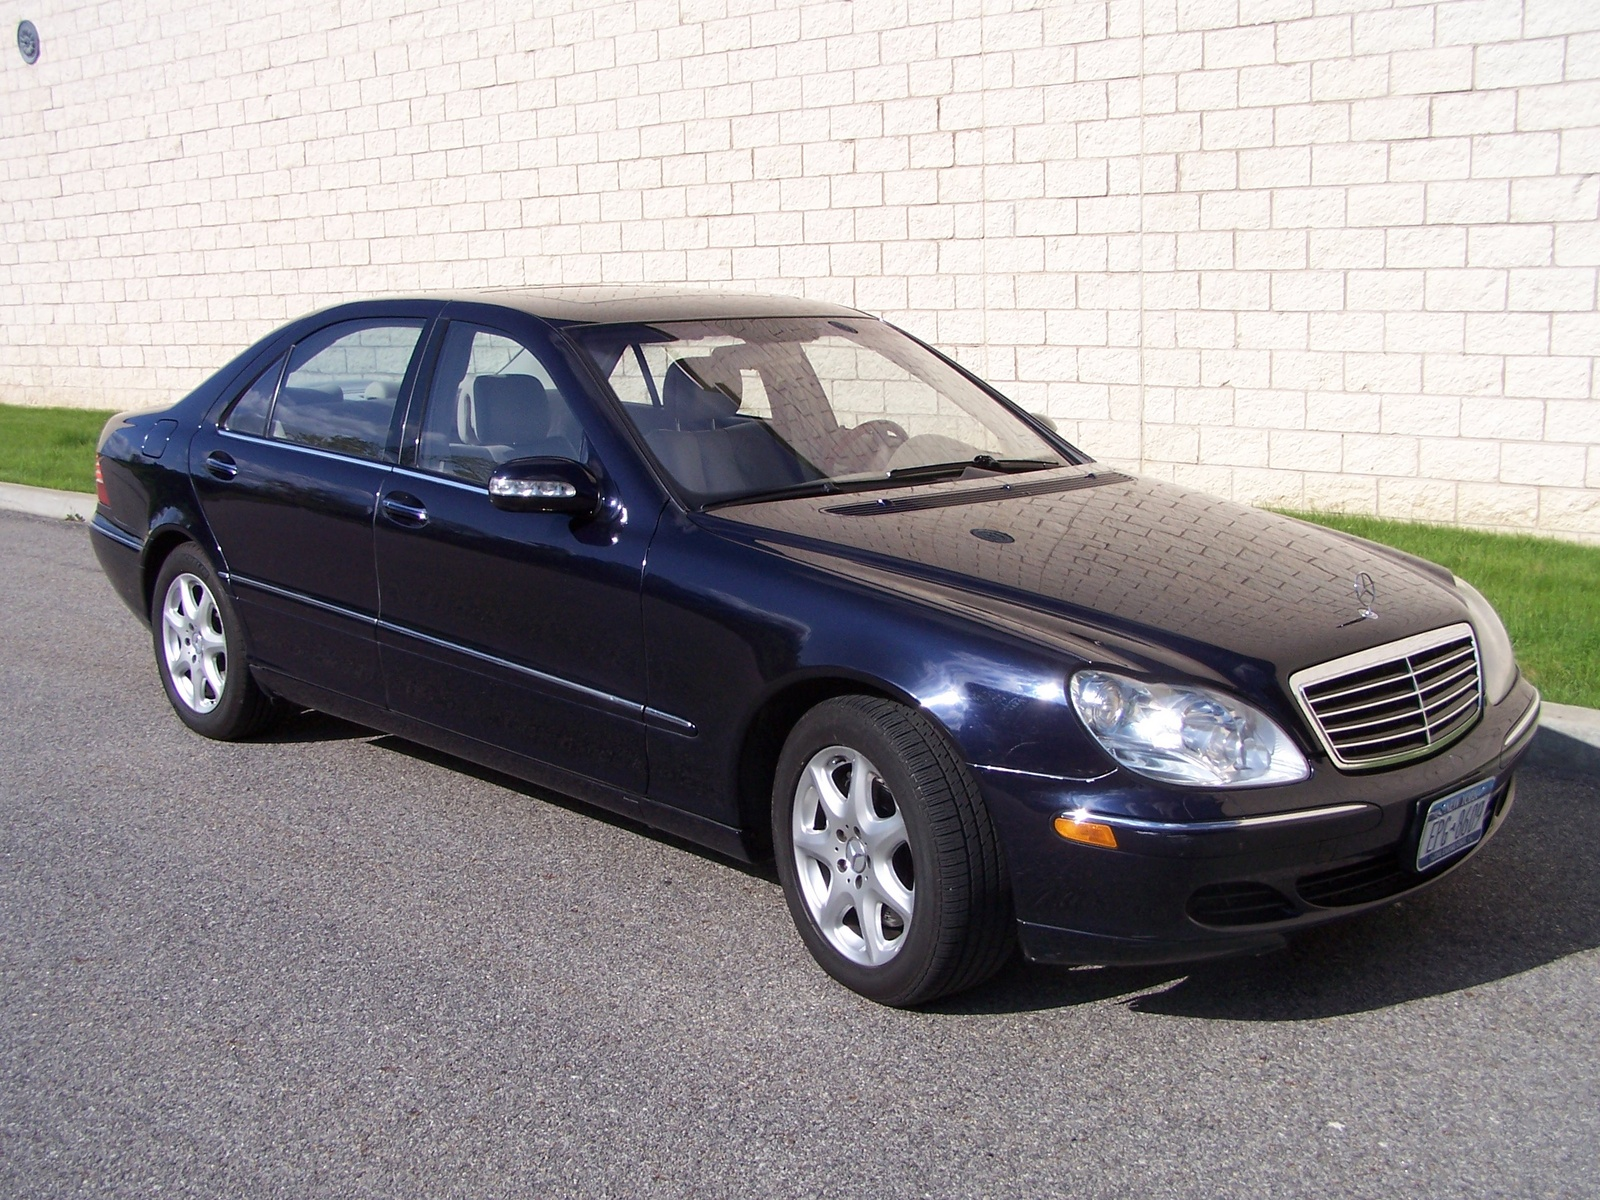 2006 mercedes benz s class exterior pictures cargurus for 2006 mercedes benz s550